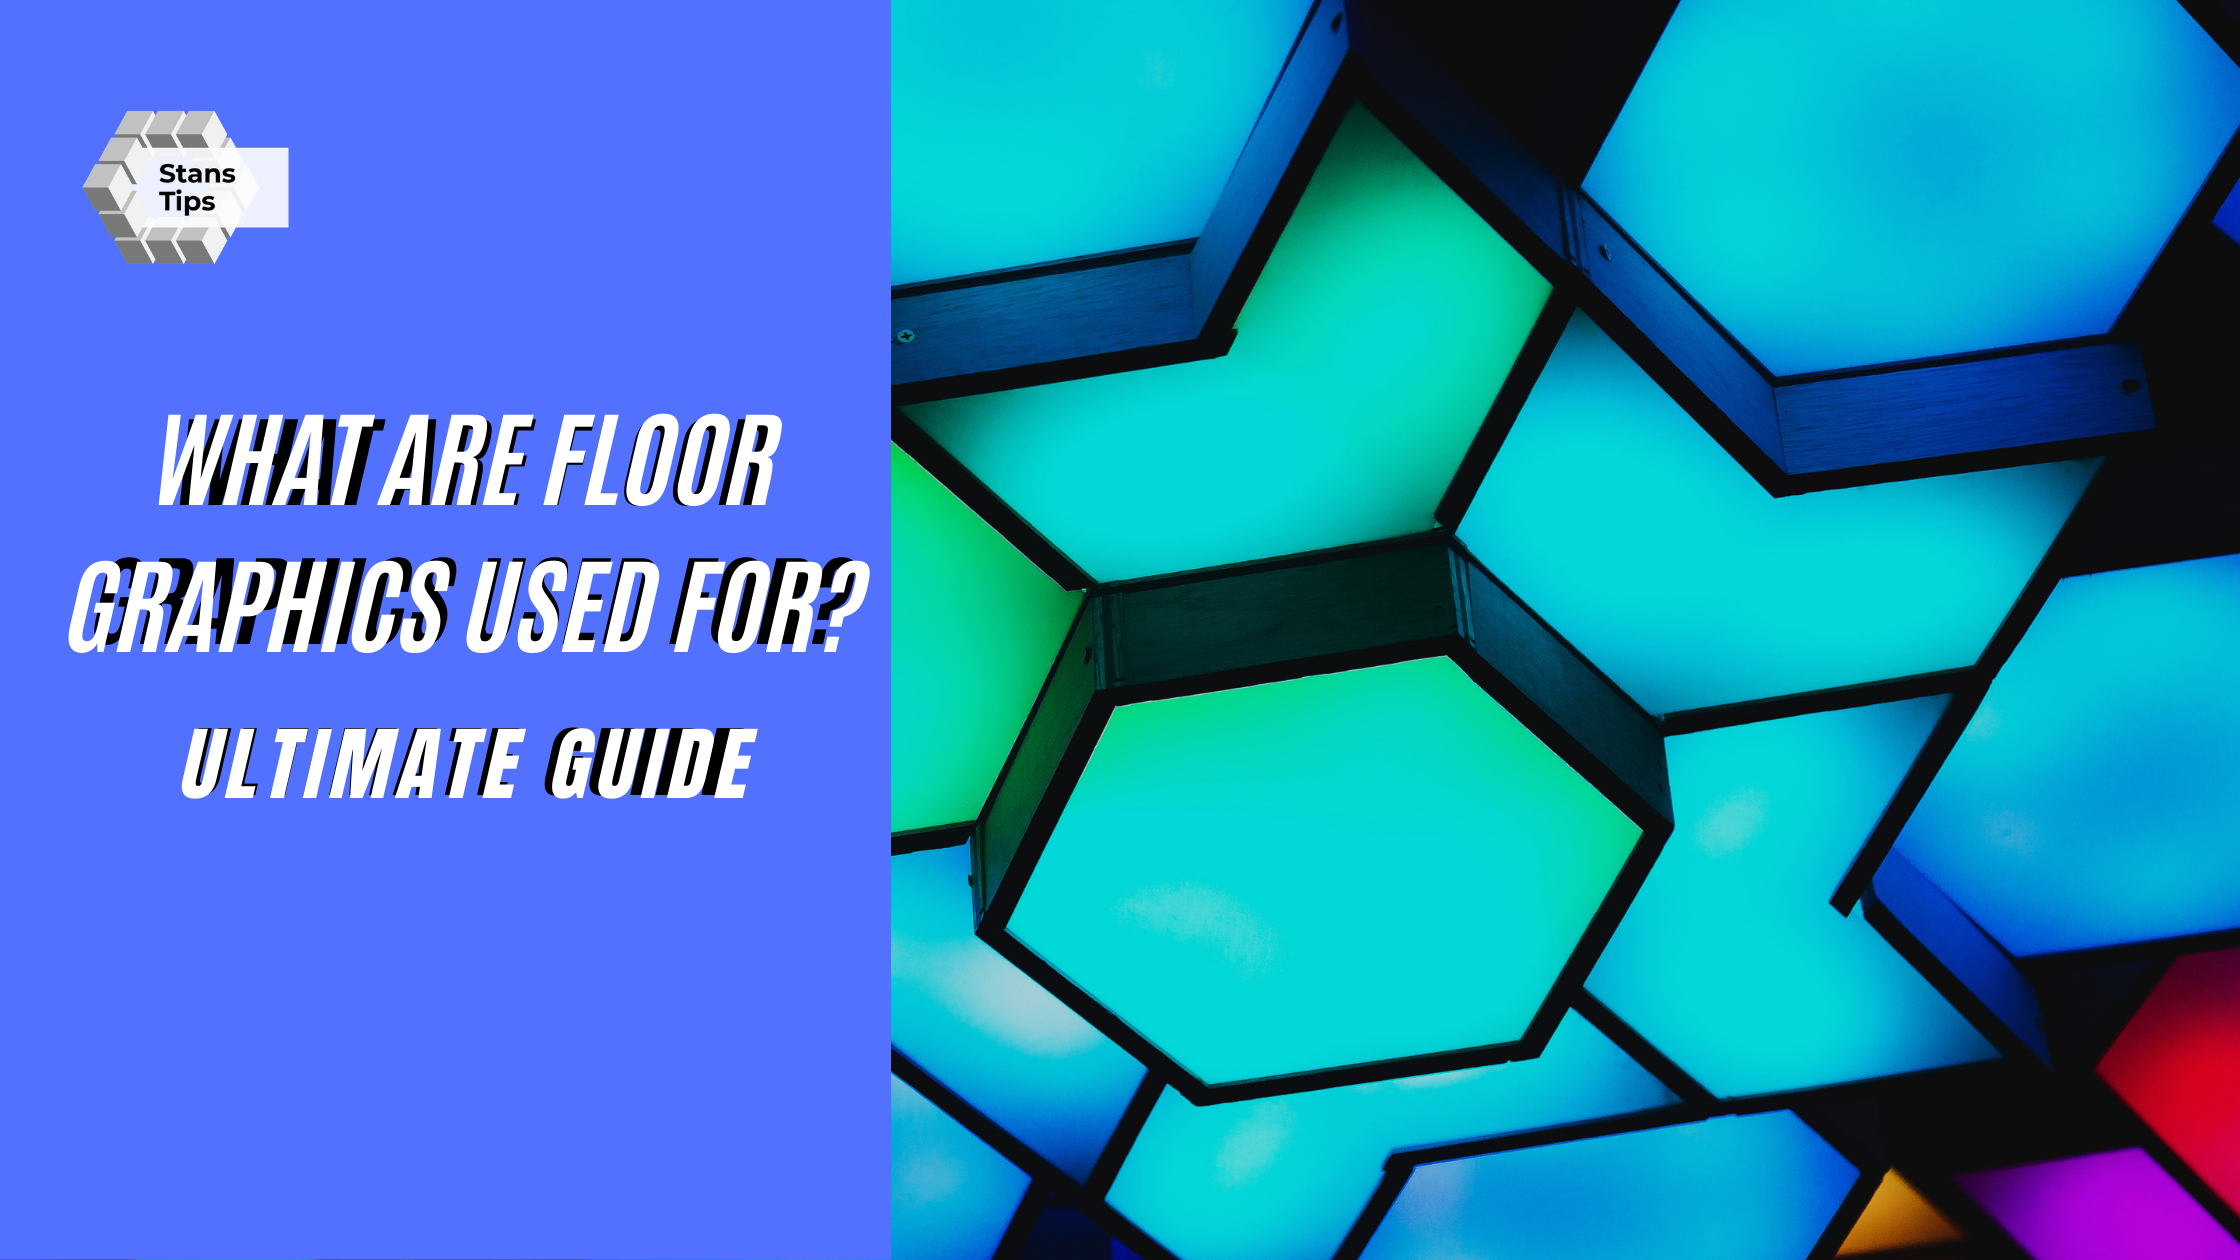 What Are Floor Graphics Used For